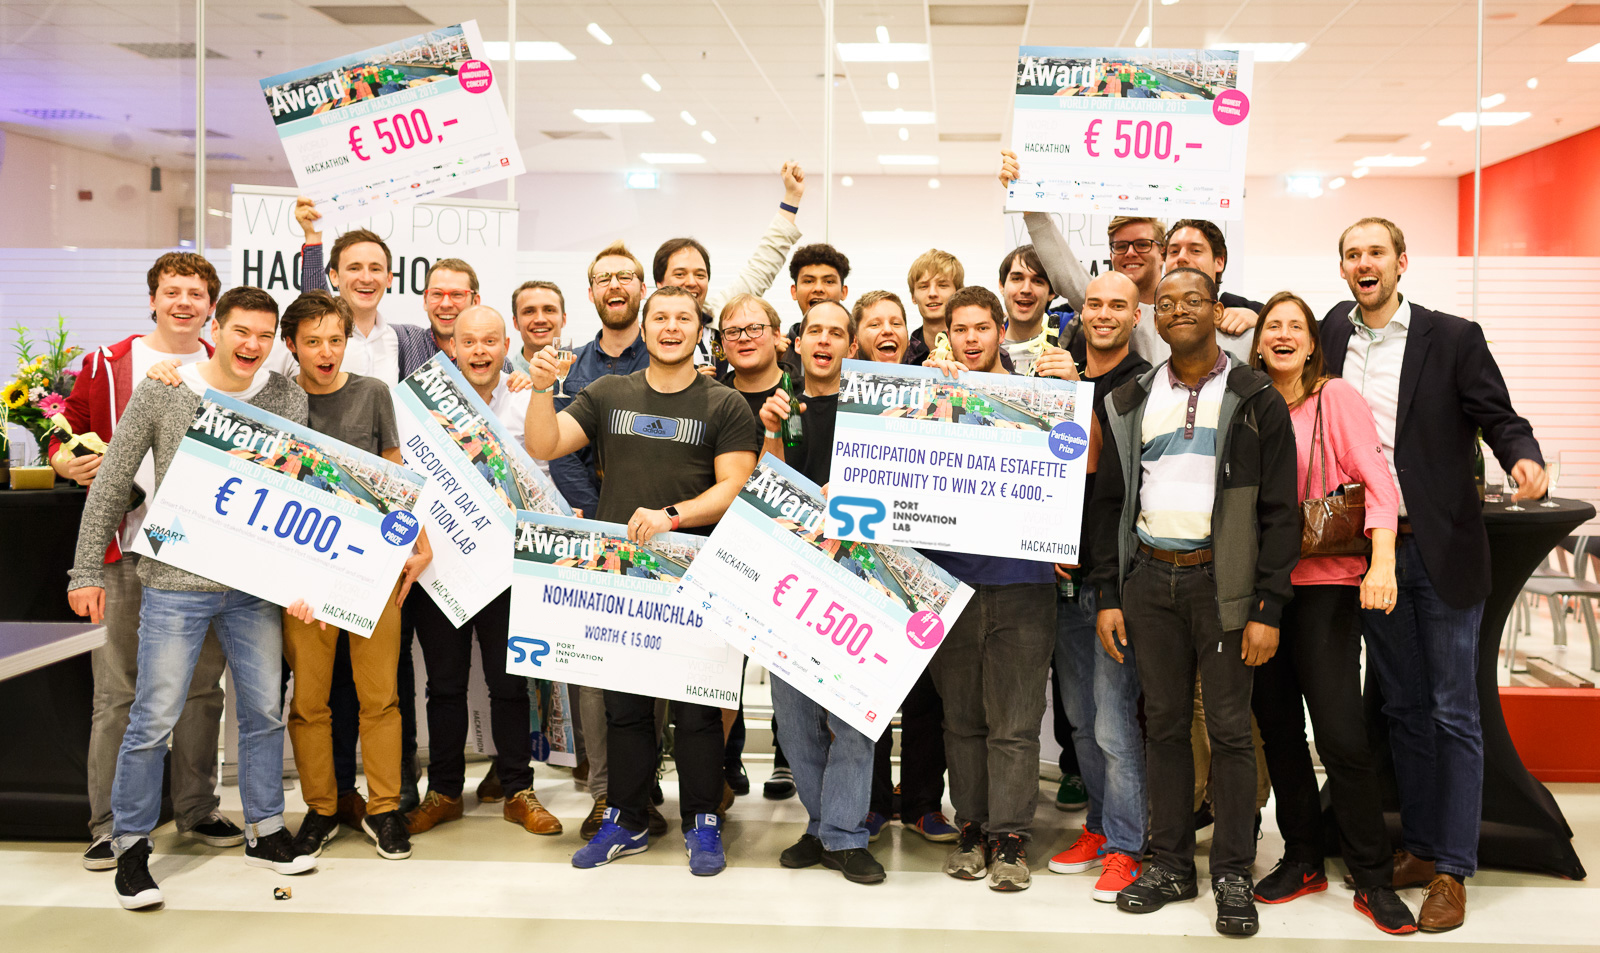 You can see my team members with the €1.500 and Nomination Launchlab placards.